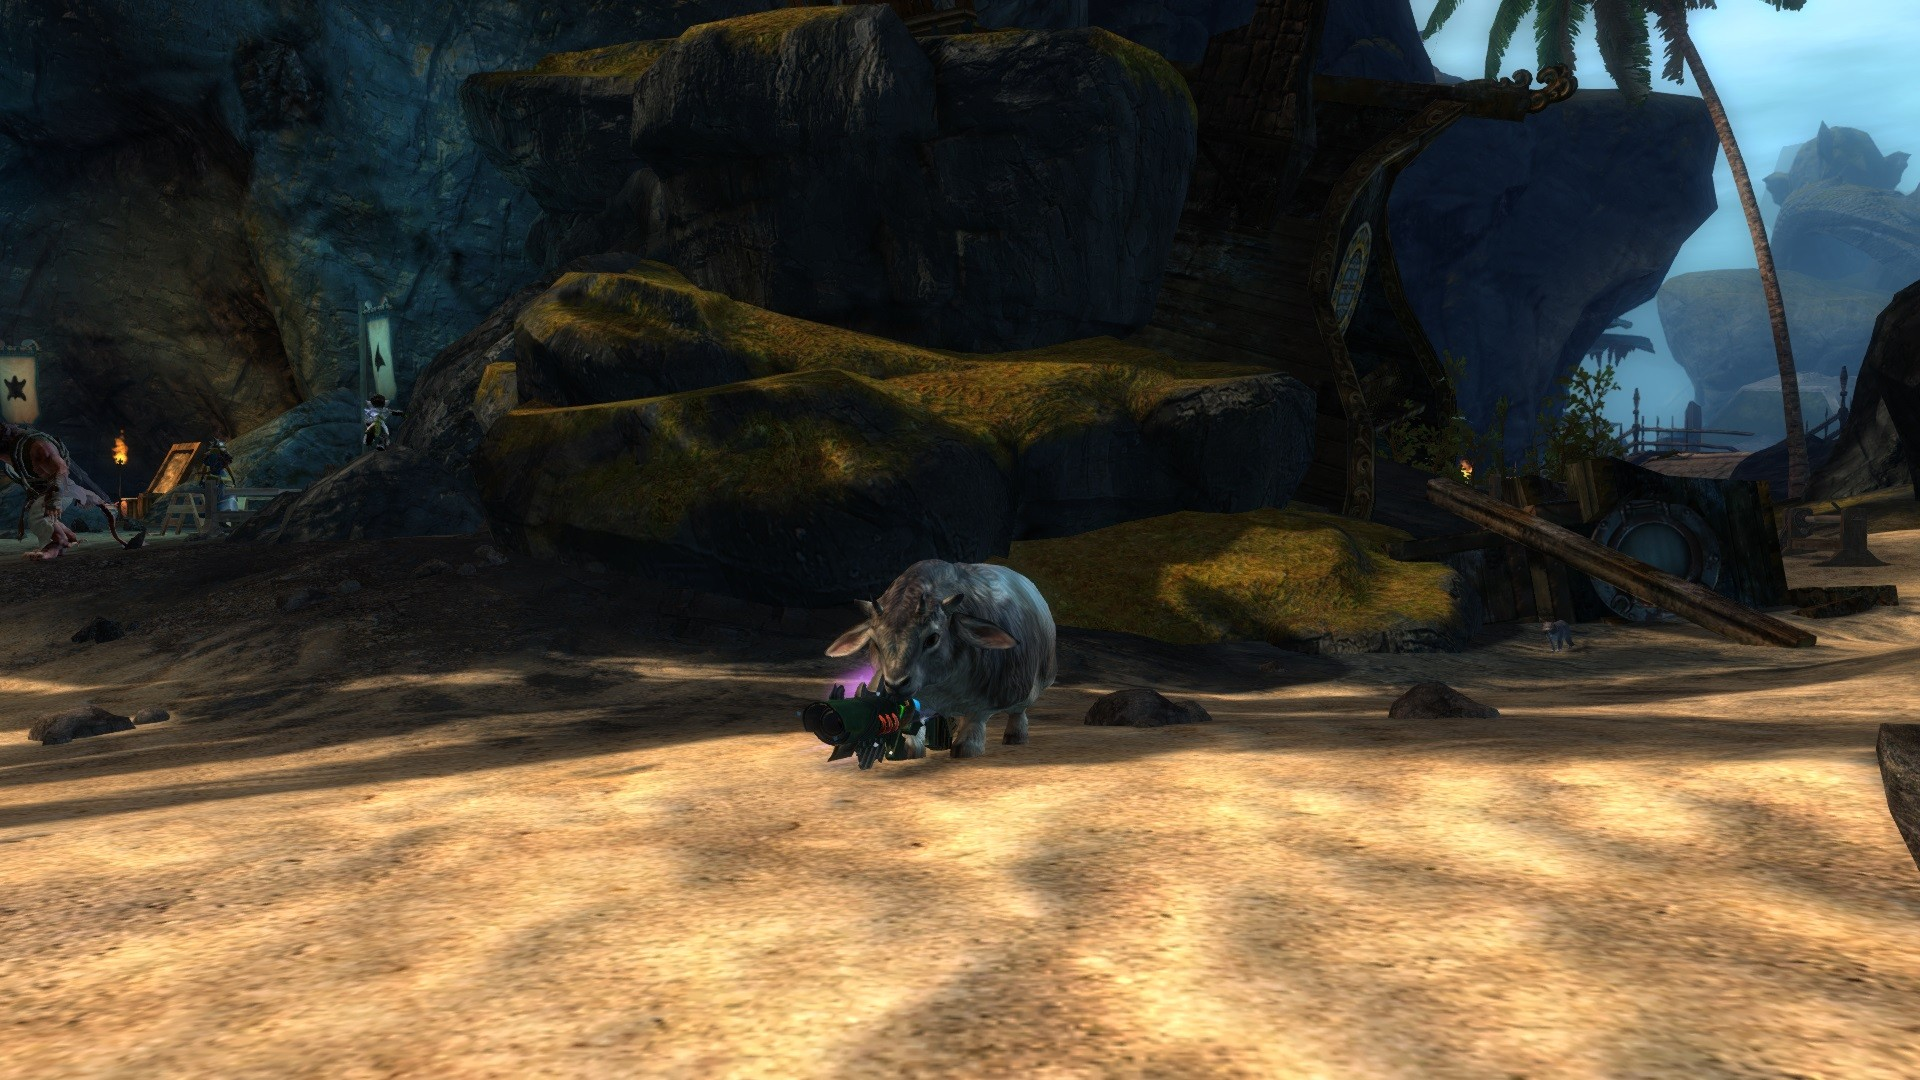 Guild Wars 2 - Time to rob banks with my dolyak